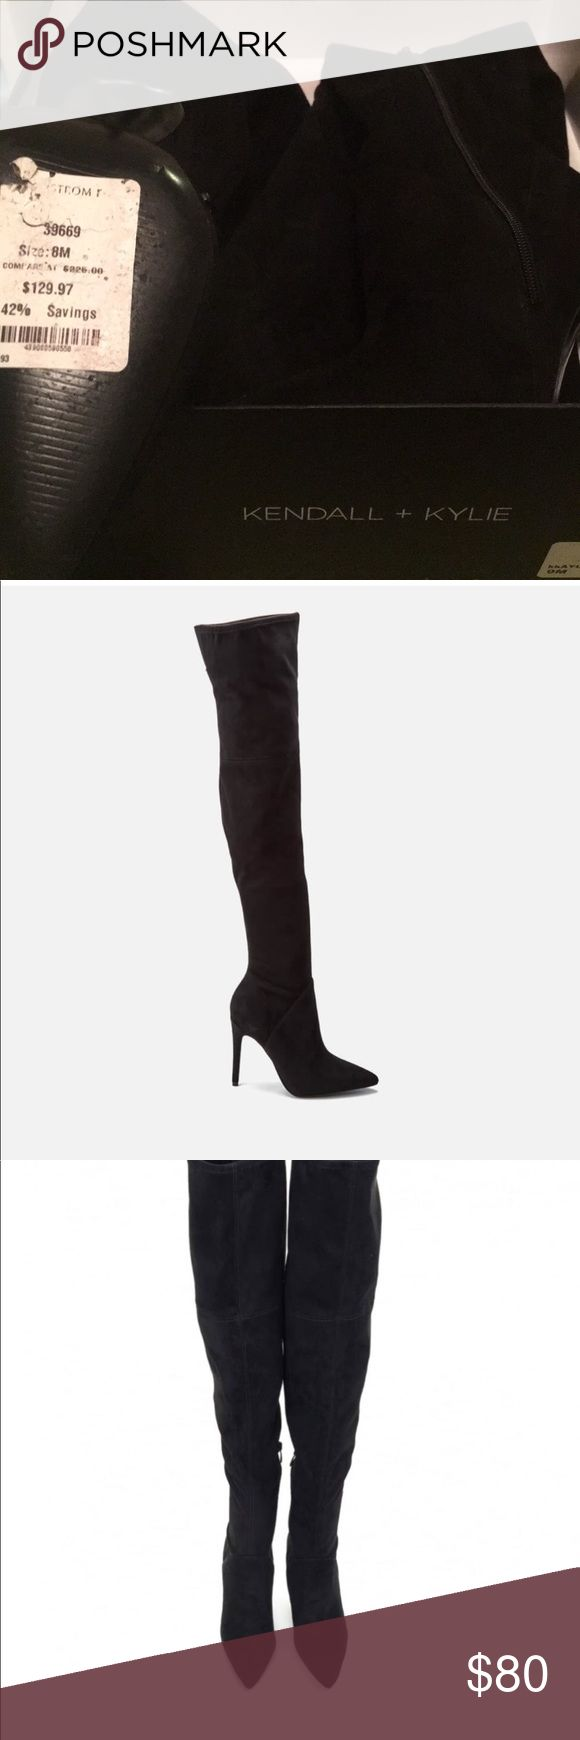 KENDALL AND KYLIE OVER THE KNEE BLACK BOOTS NWT New with tags never been worn over the knee black suede boots. Pristine condition. Kendall & Kylie Shoes Over the Knee Boots